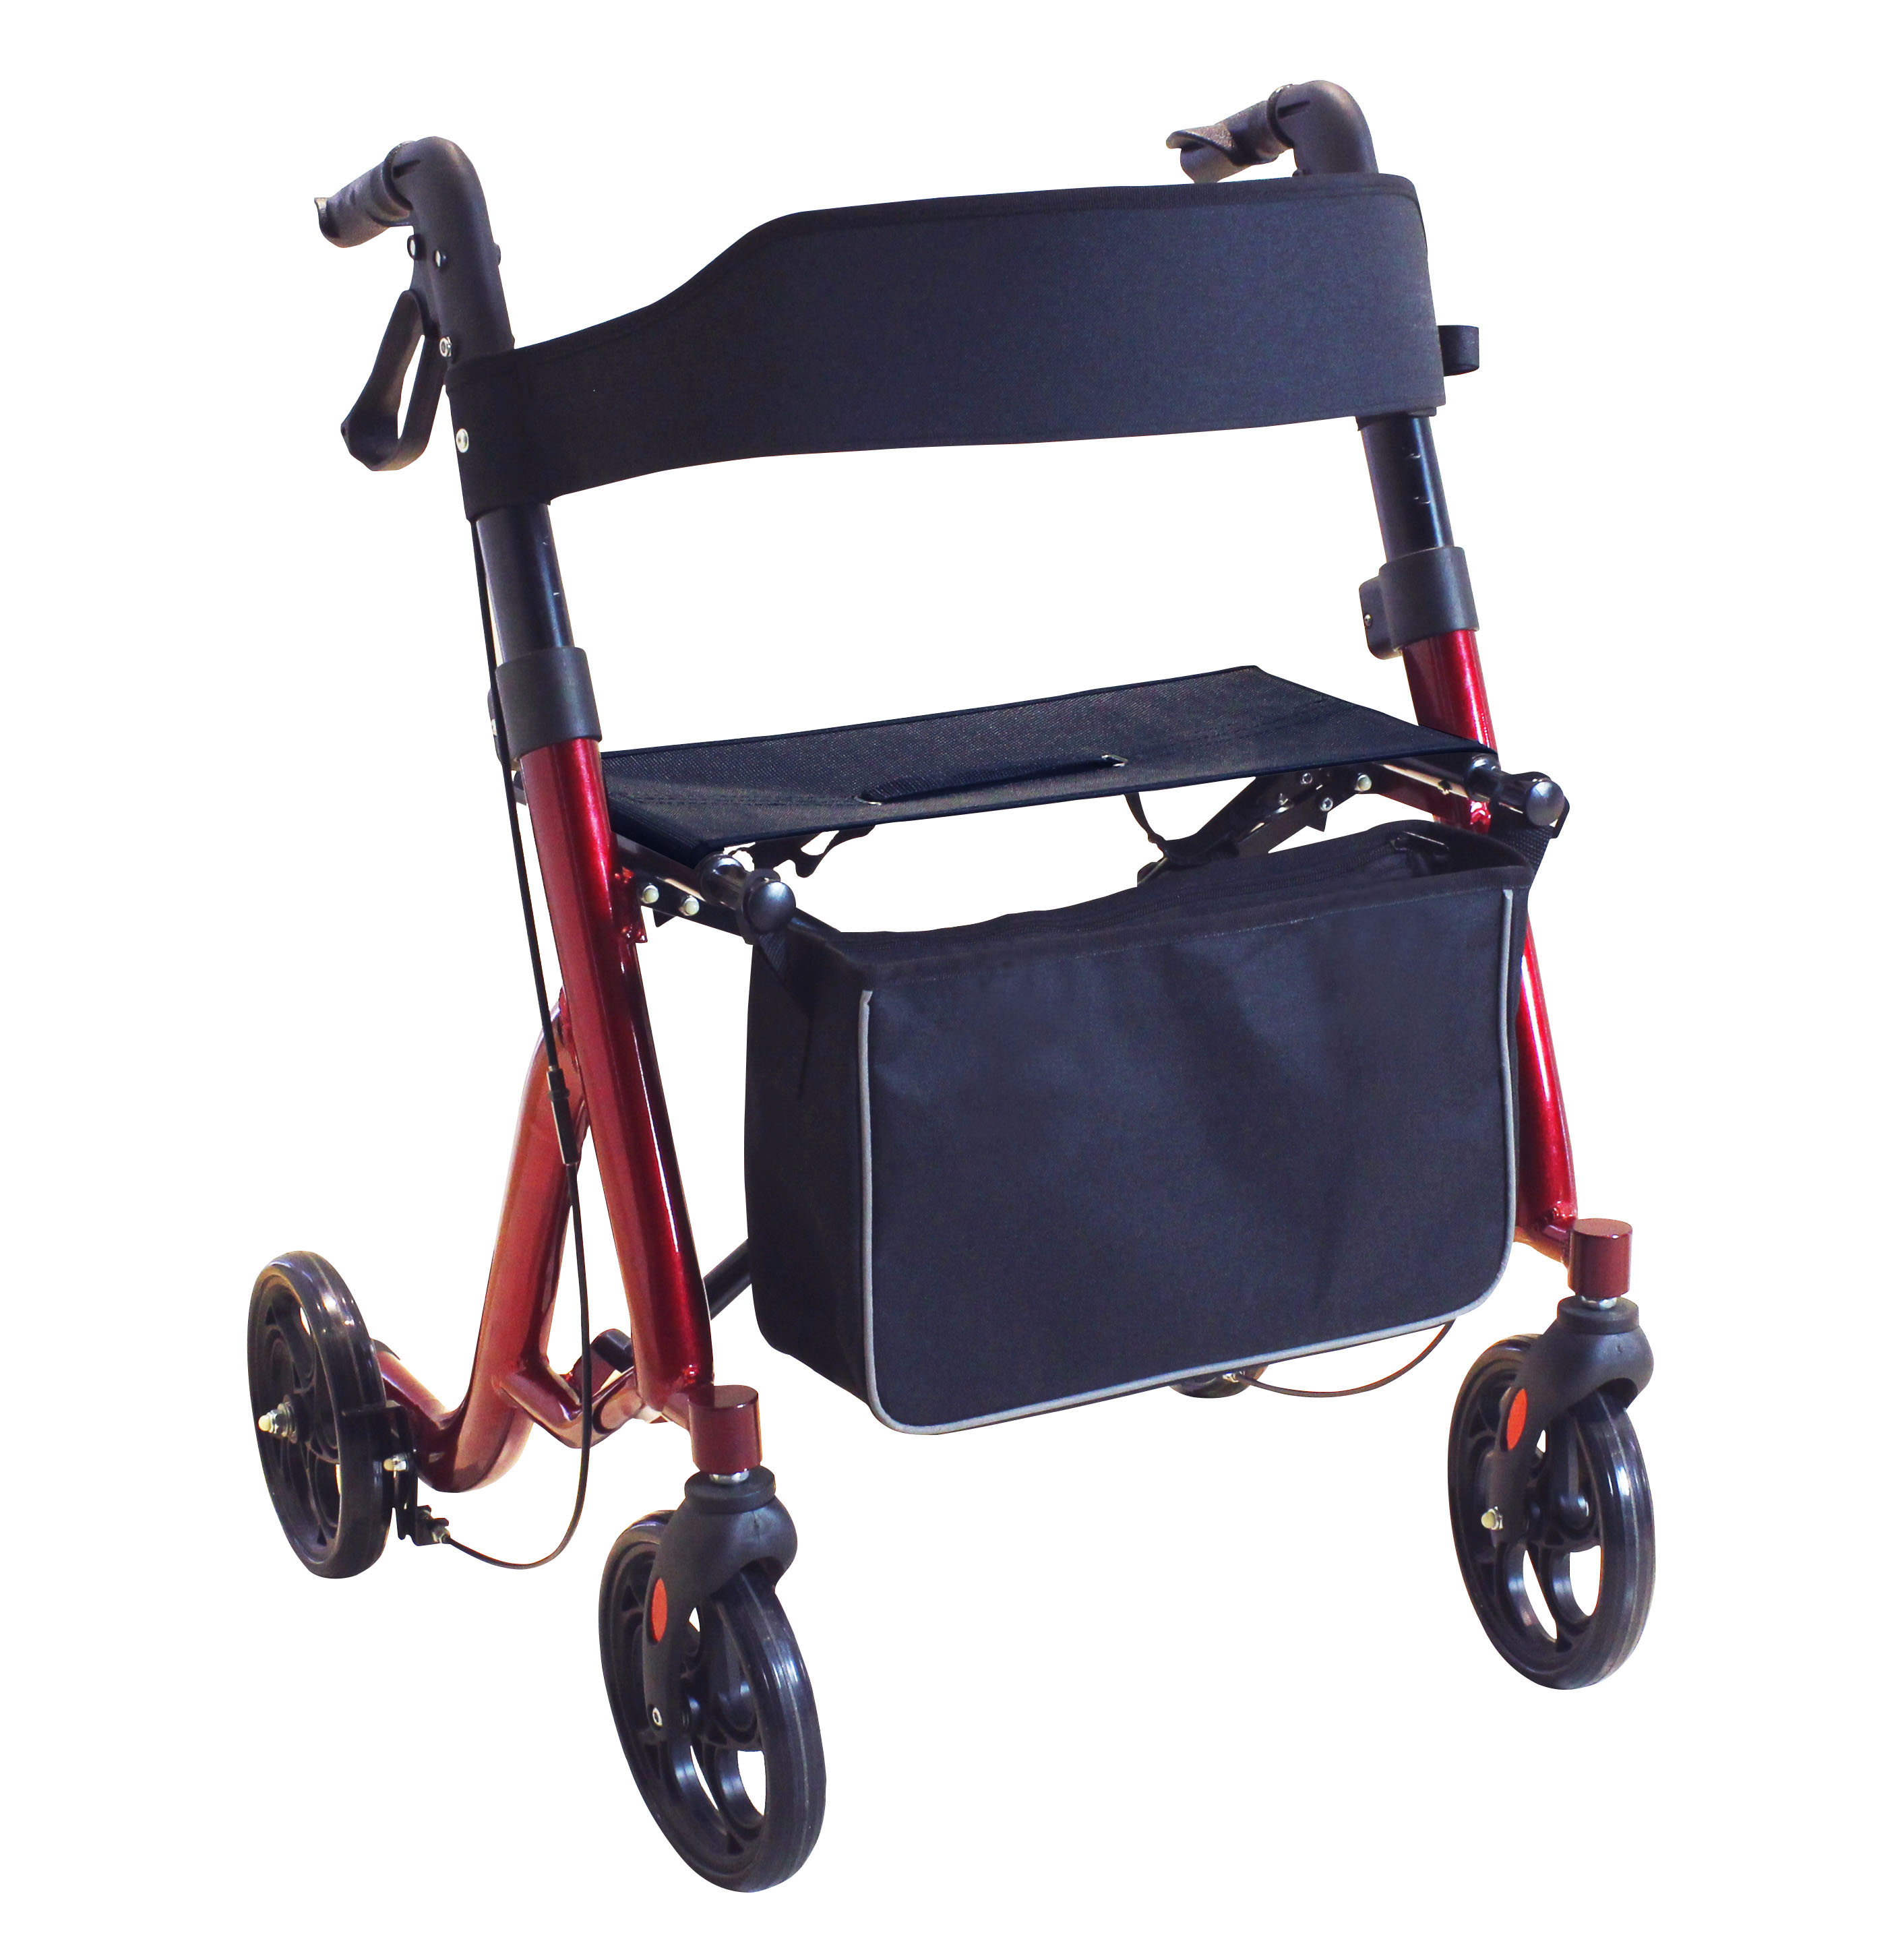 New Design Red Color Oval Tube 4 Wheels Rollator Walker with seat and shopping bag